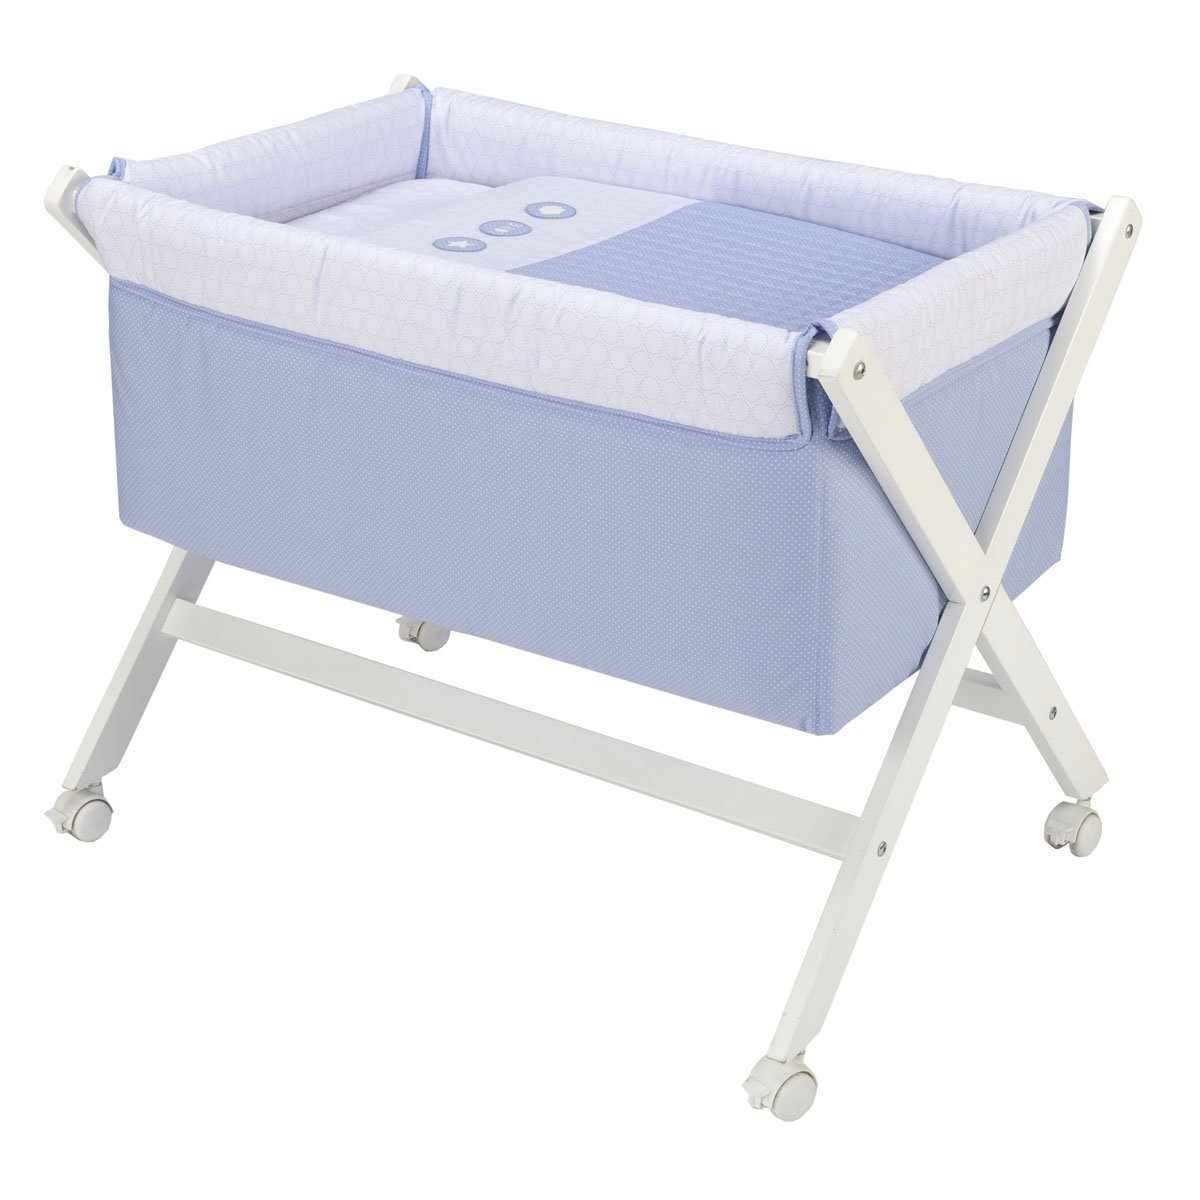 Cambrass Small Bed X Wood Une, 55 x 87 x 74 cm, Pic Blue Cambruss 41209